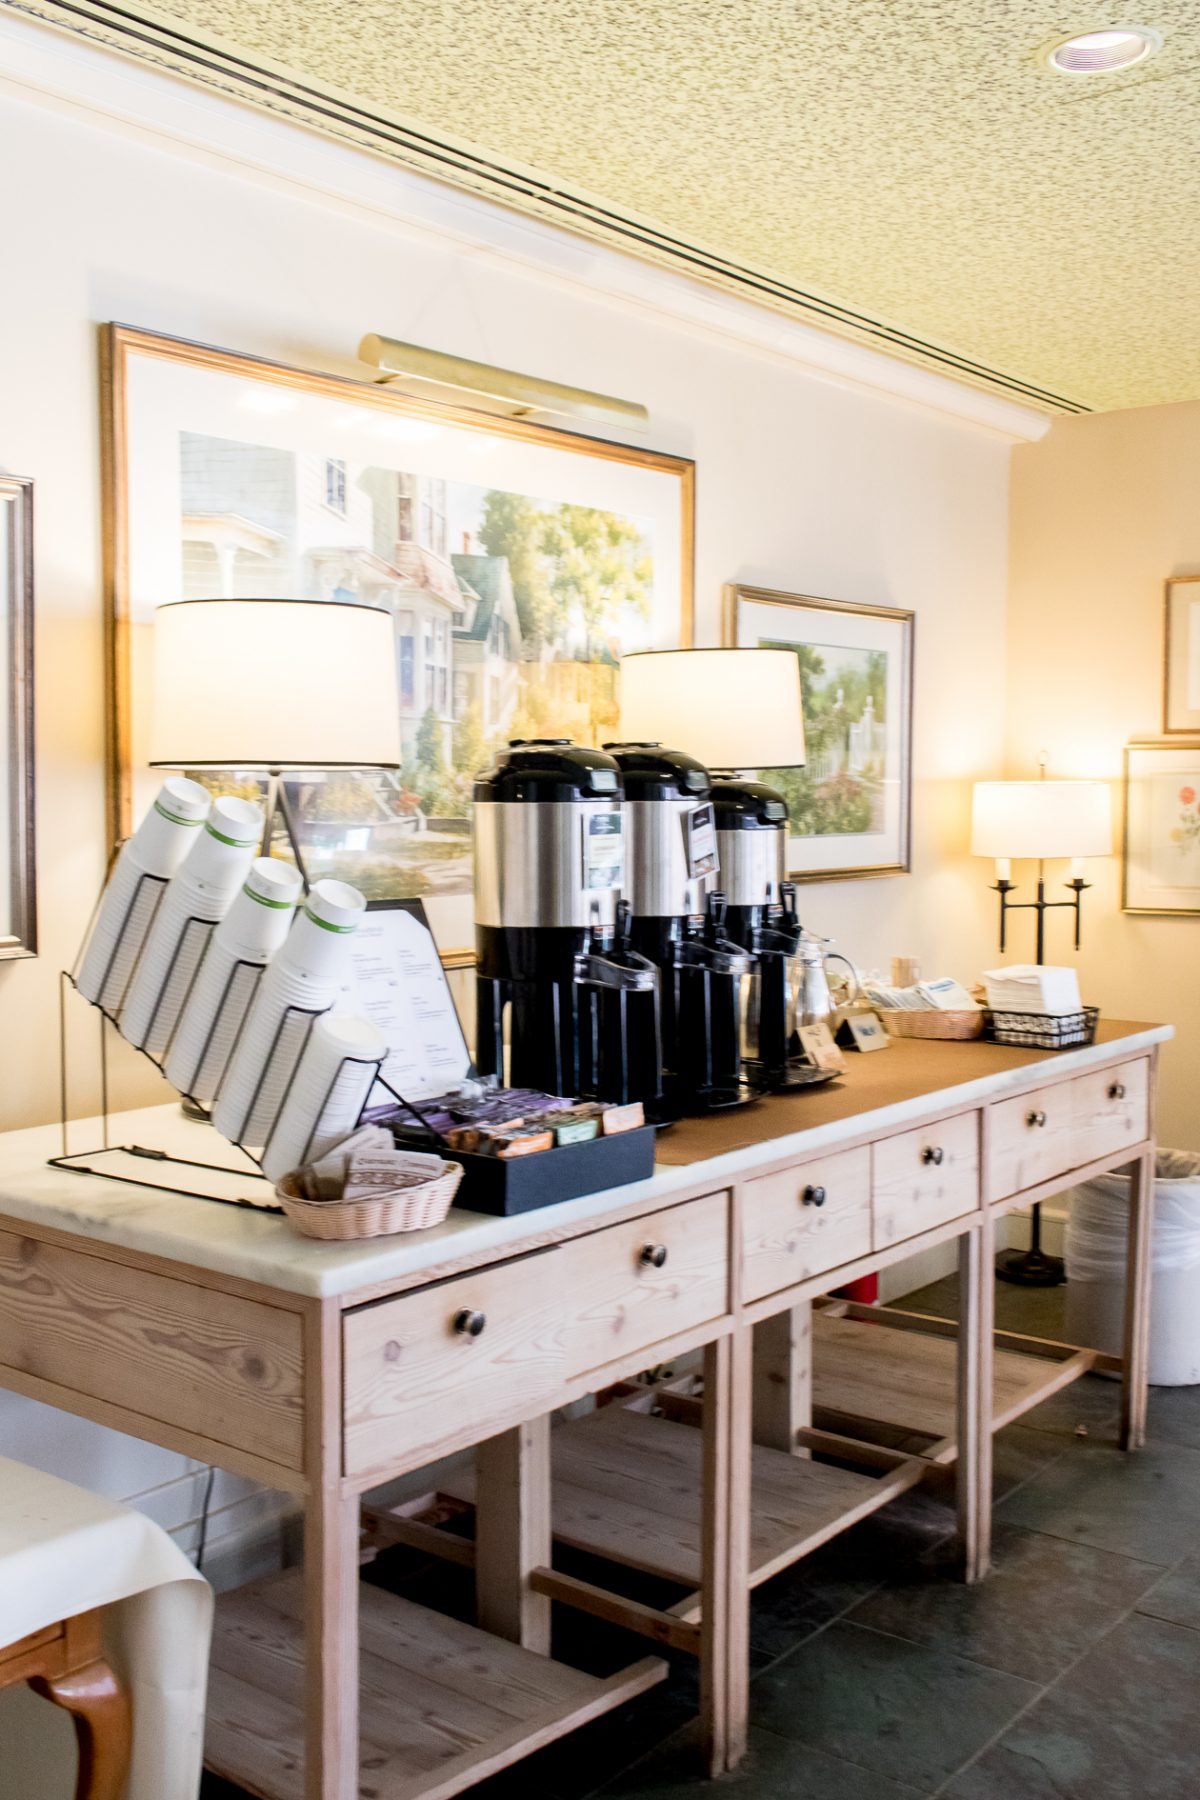 Coffee and Tea Station at Woodstock Inn and Resort in Woodstock Vermont